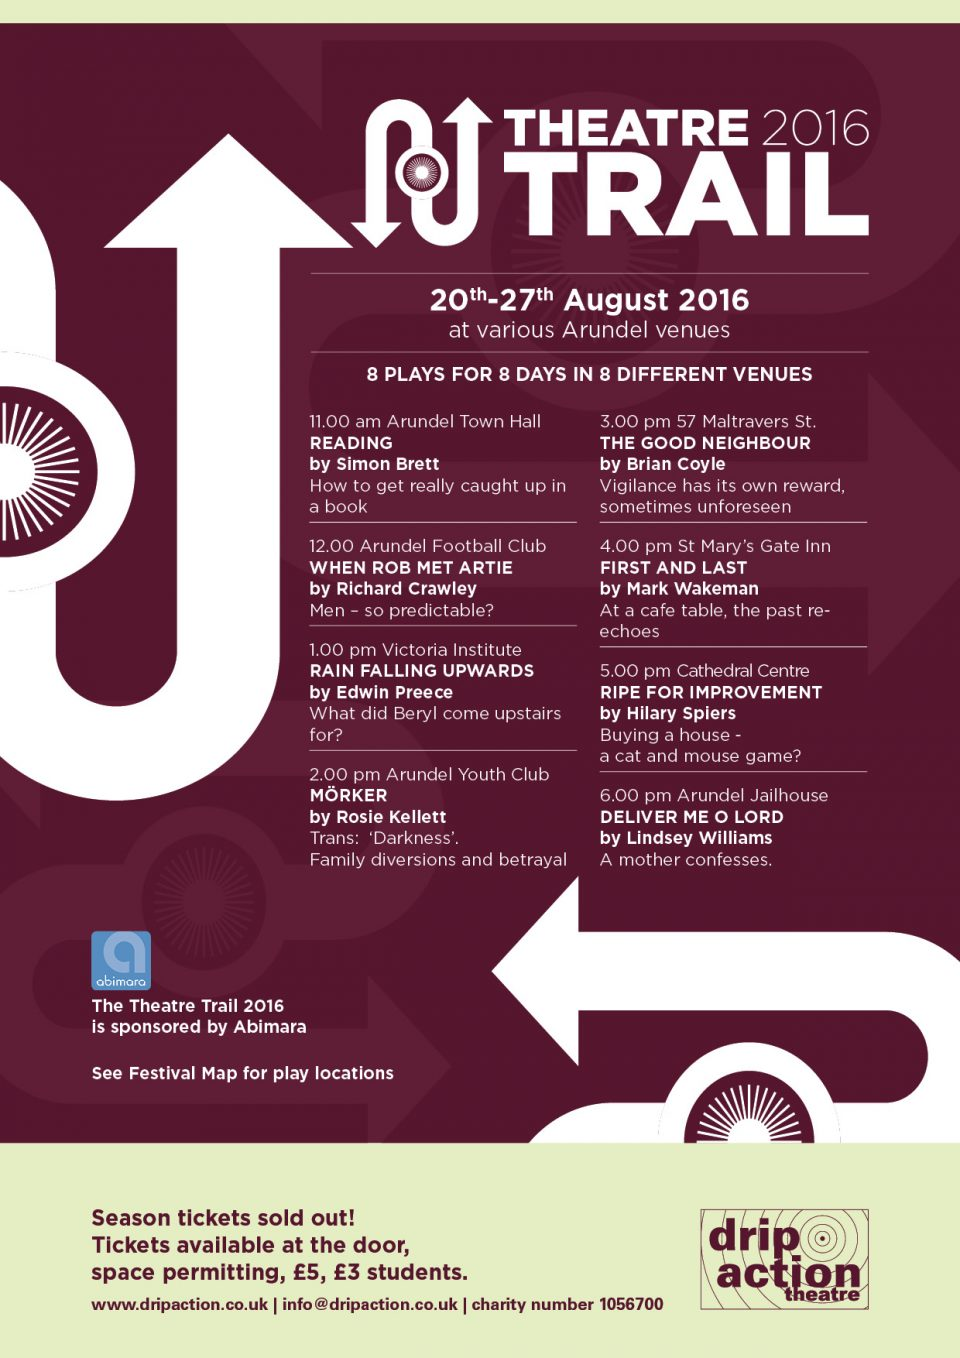 Drip Action Theatre Trail 2016